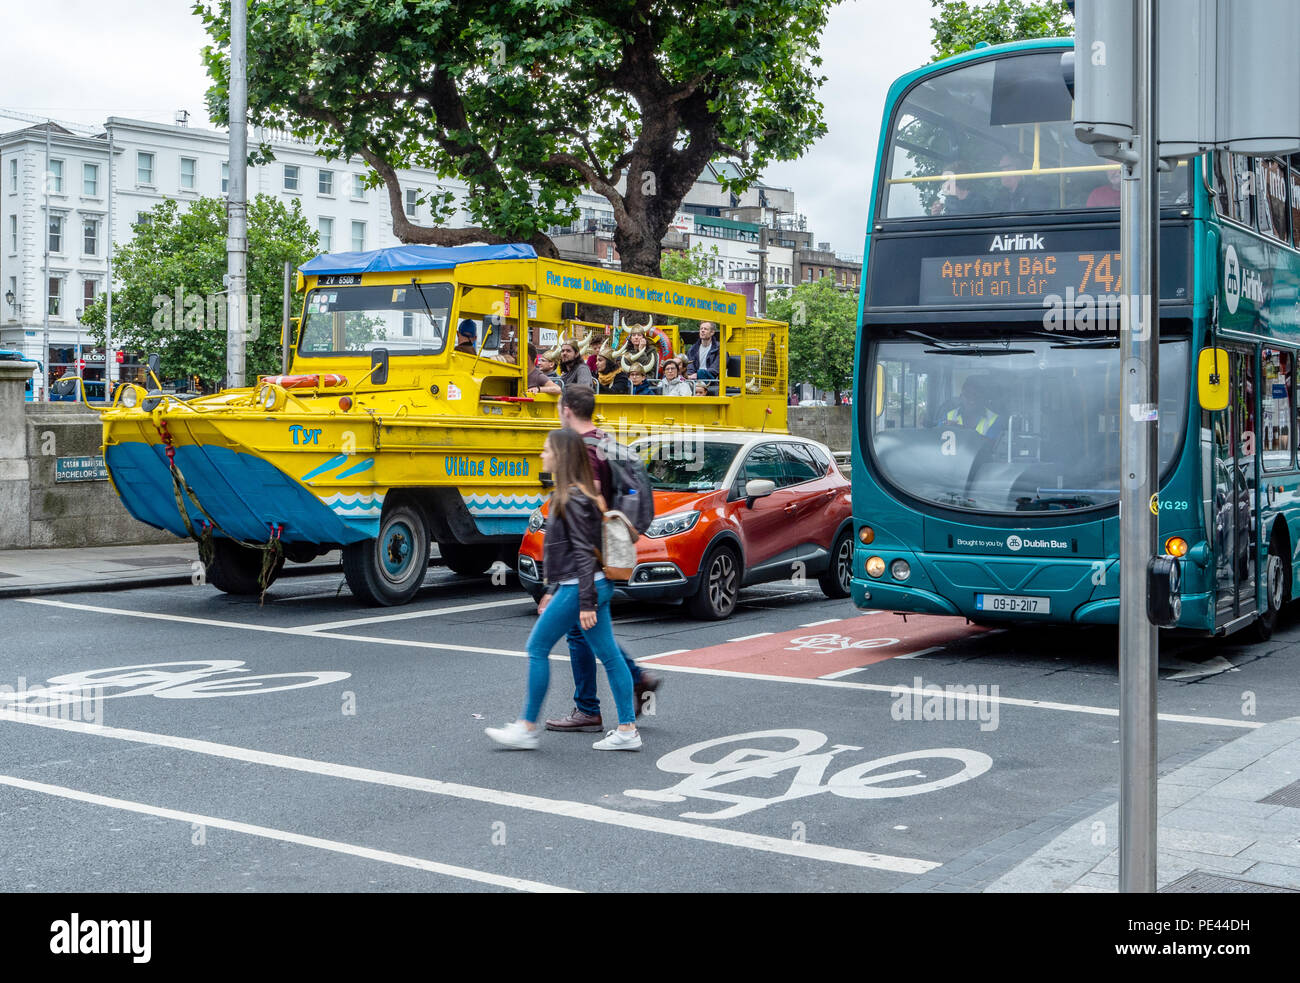 The Duck Tours amphibious vehicle waiting at a pedestrian crossing with a car and bus in the centre of Dublin Ireland - Stock Image